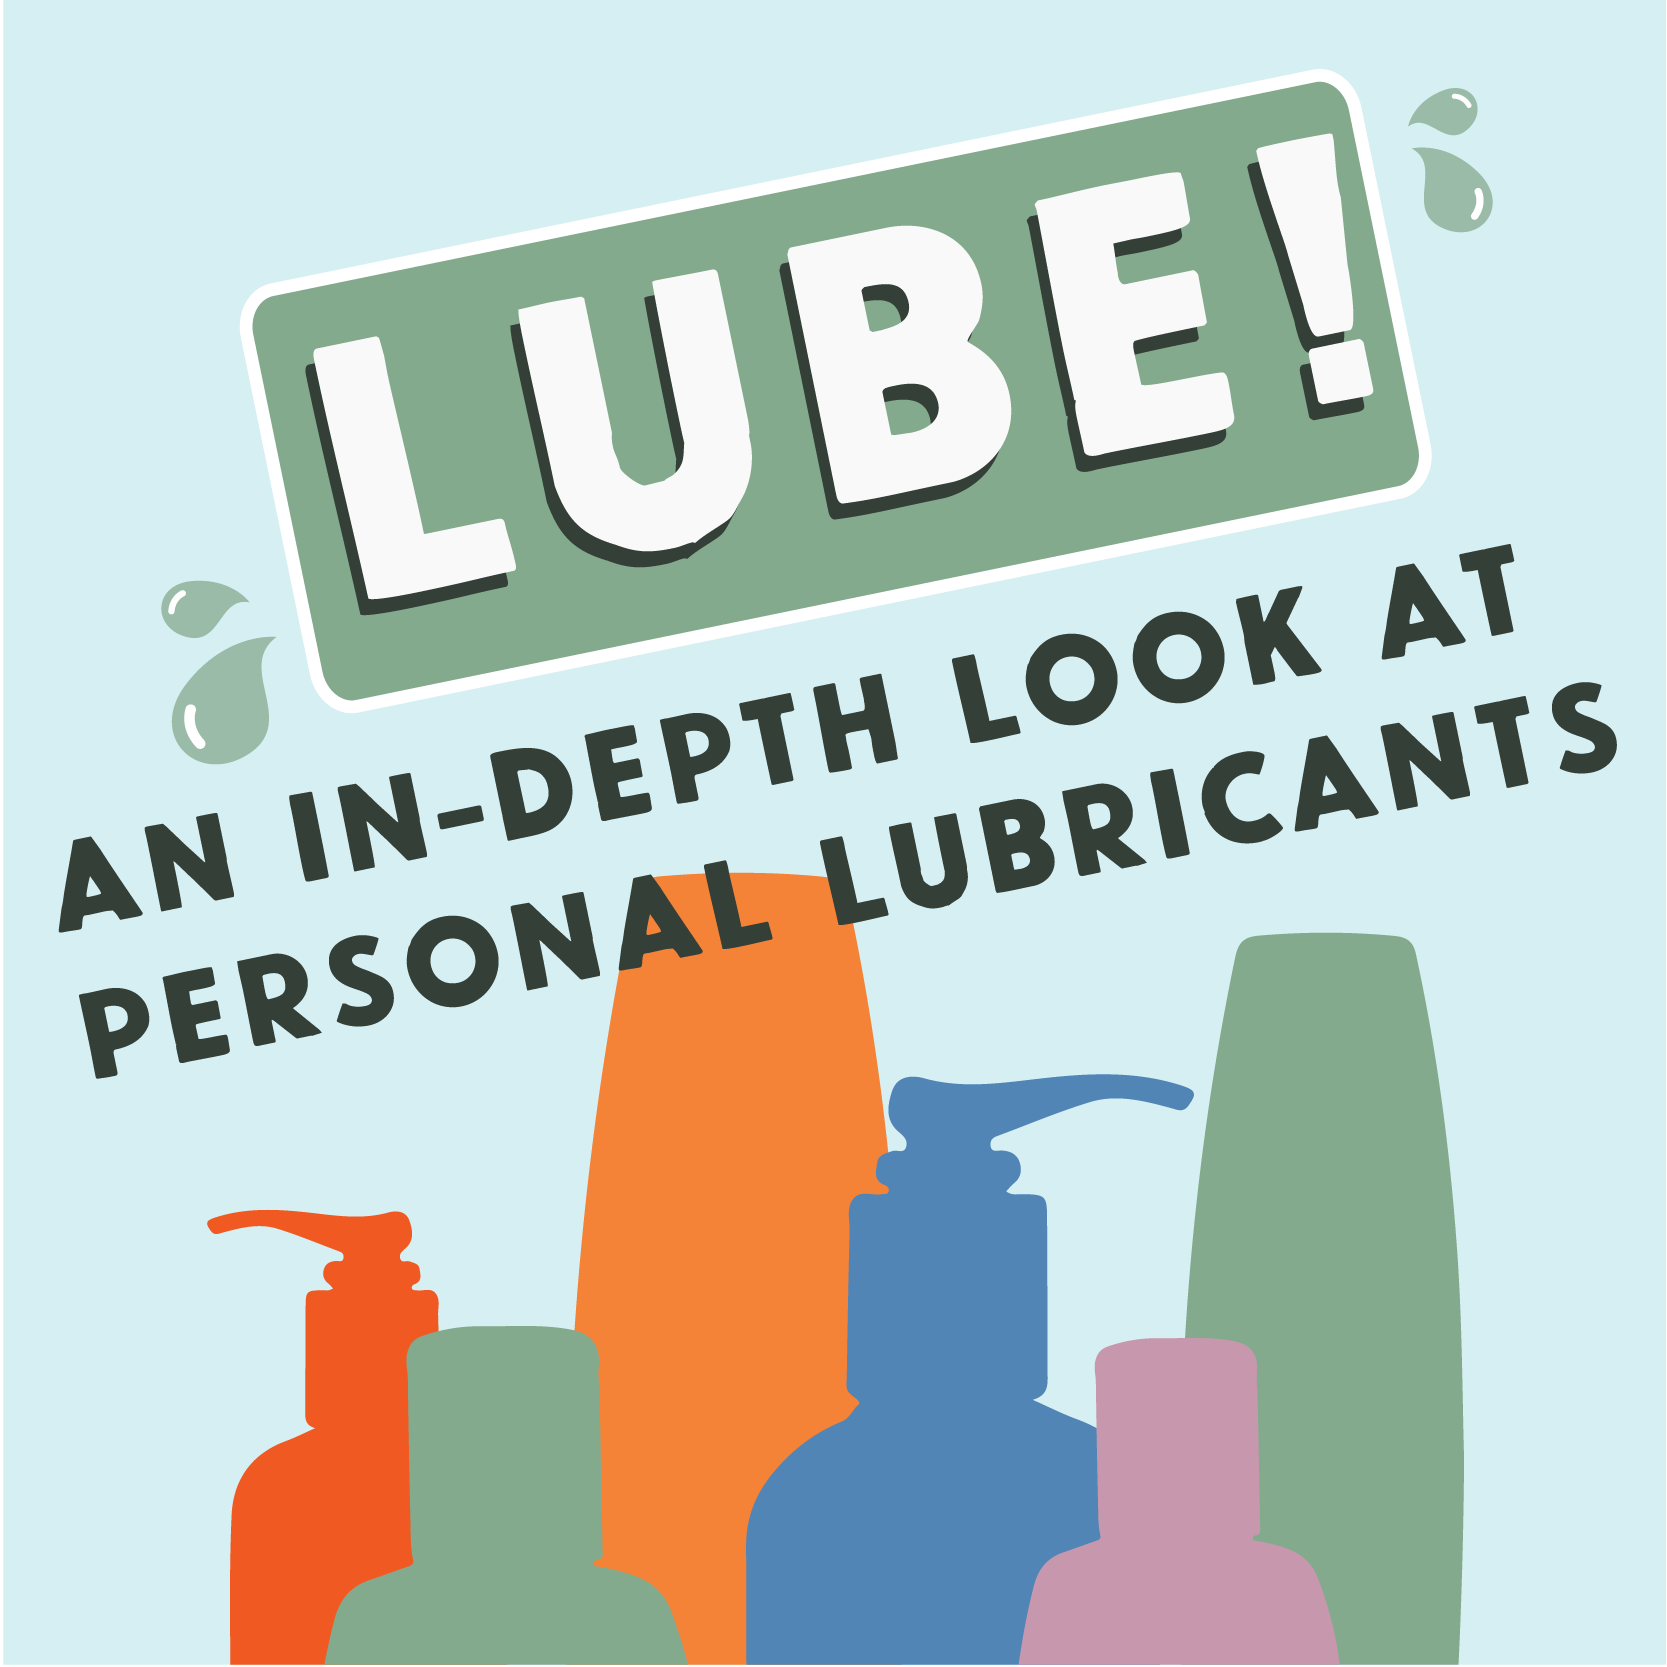 Lube! An in-depth look at personal lubricants